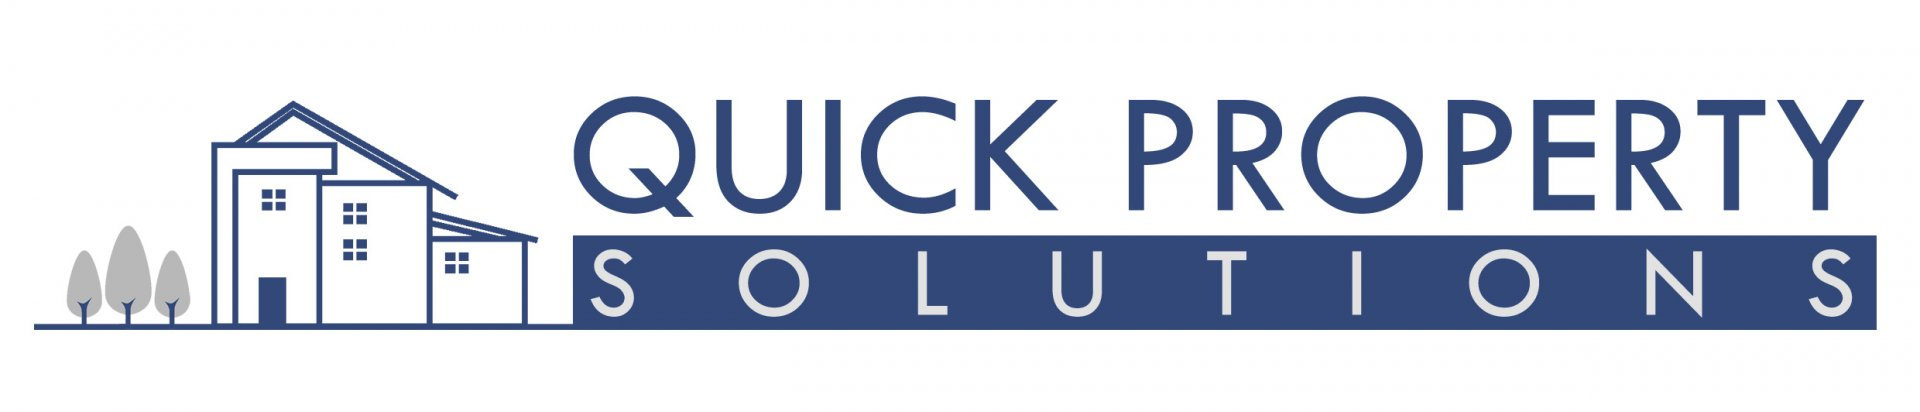 Quick Property Solutions logo